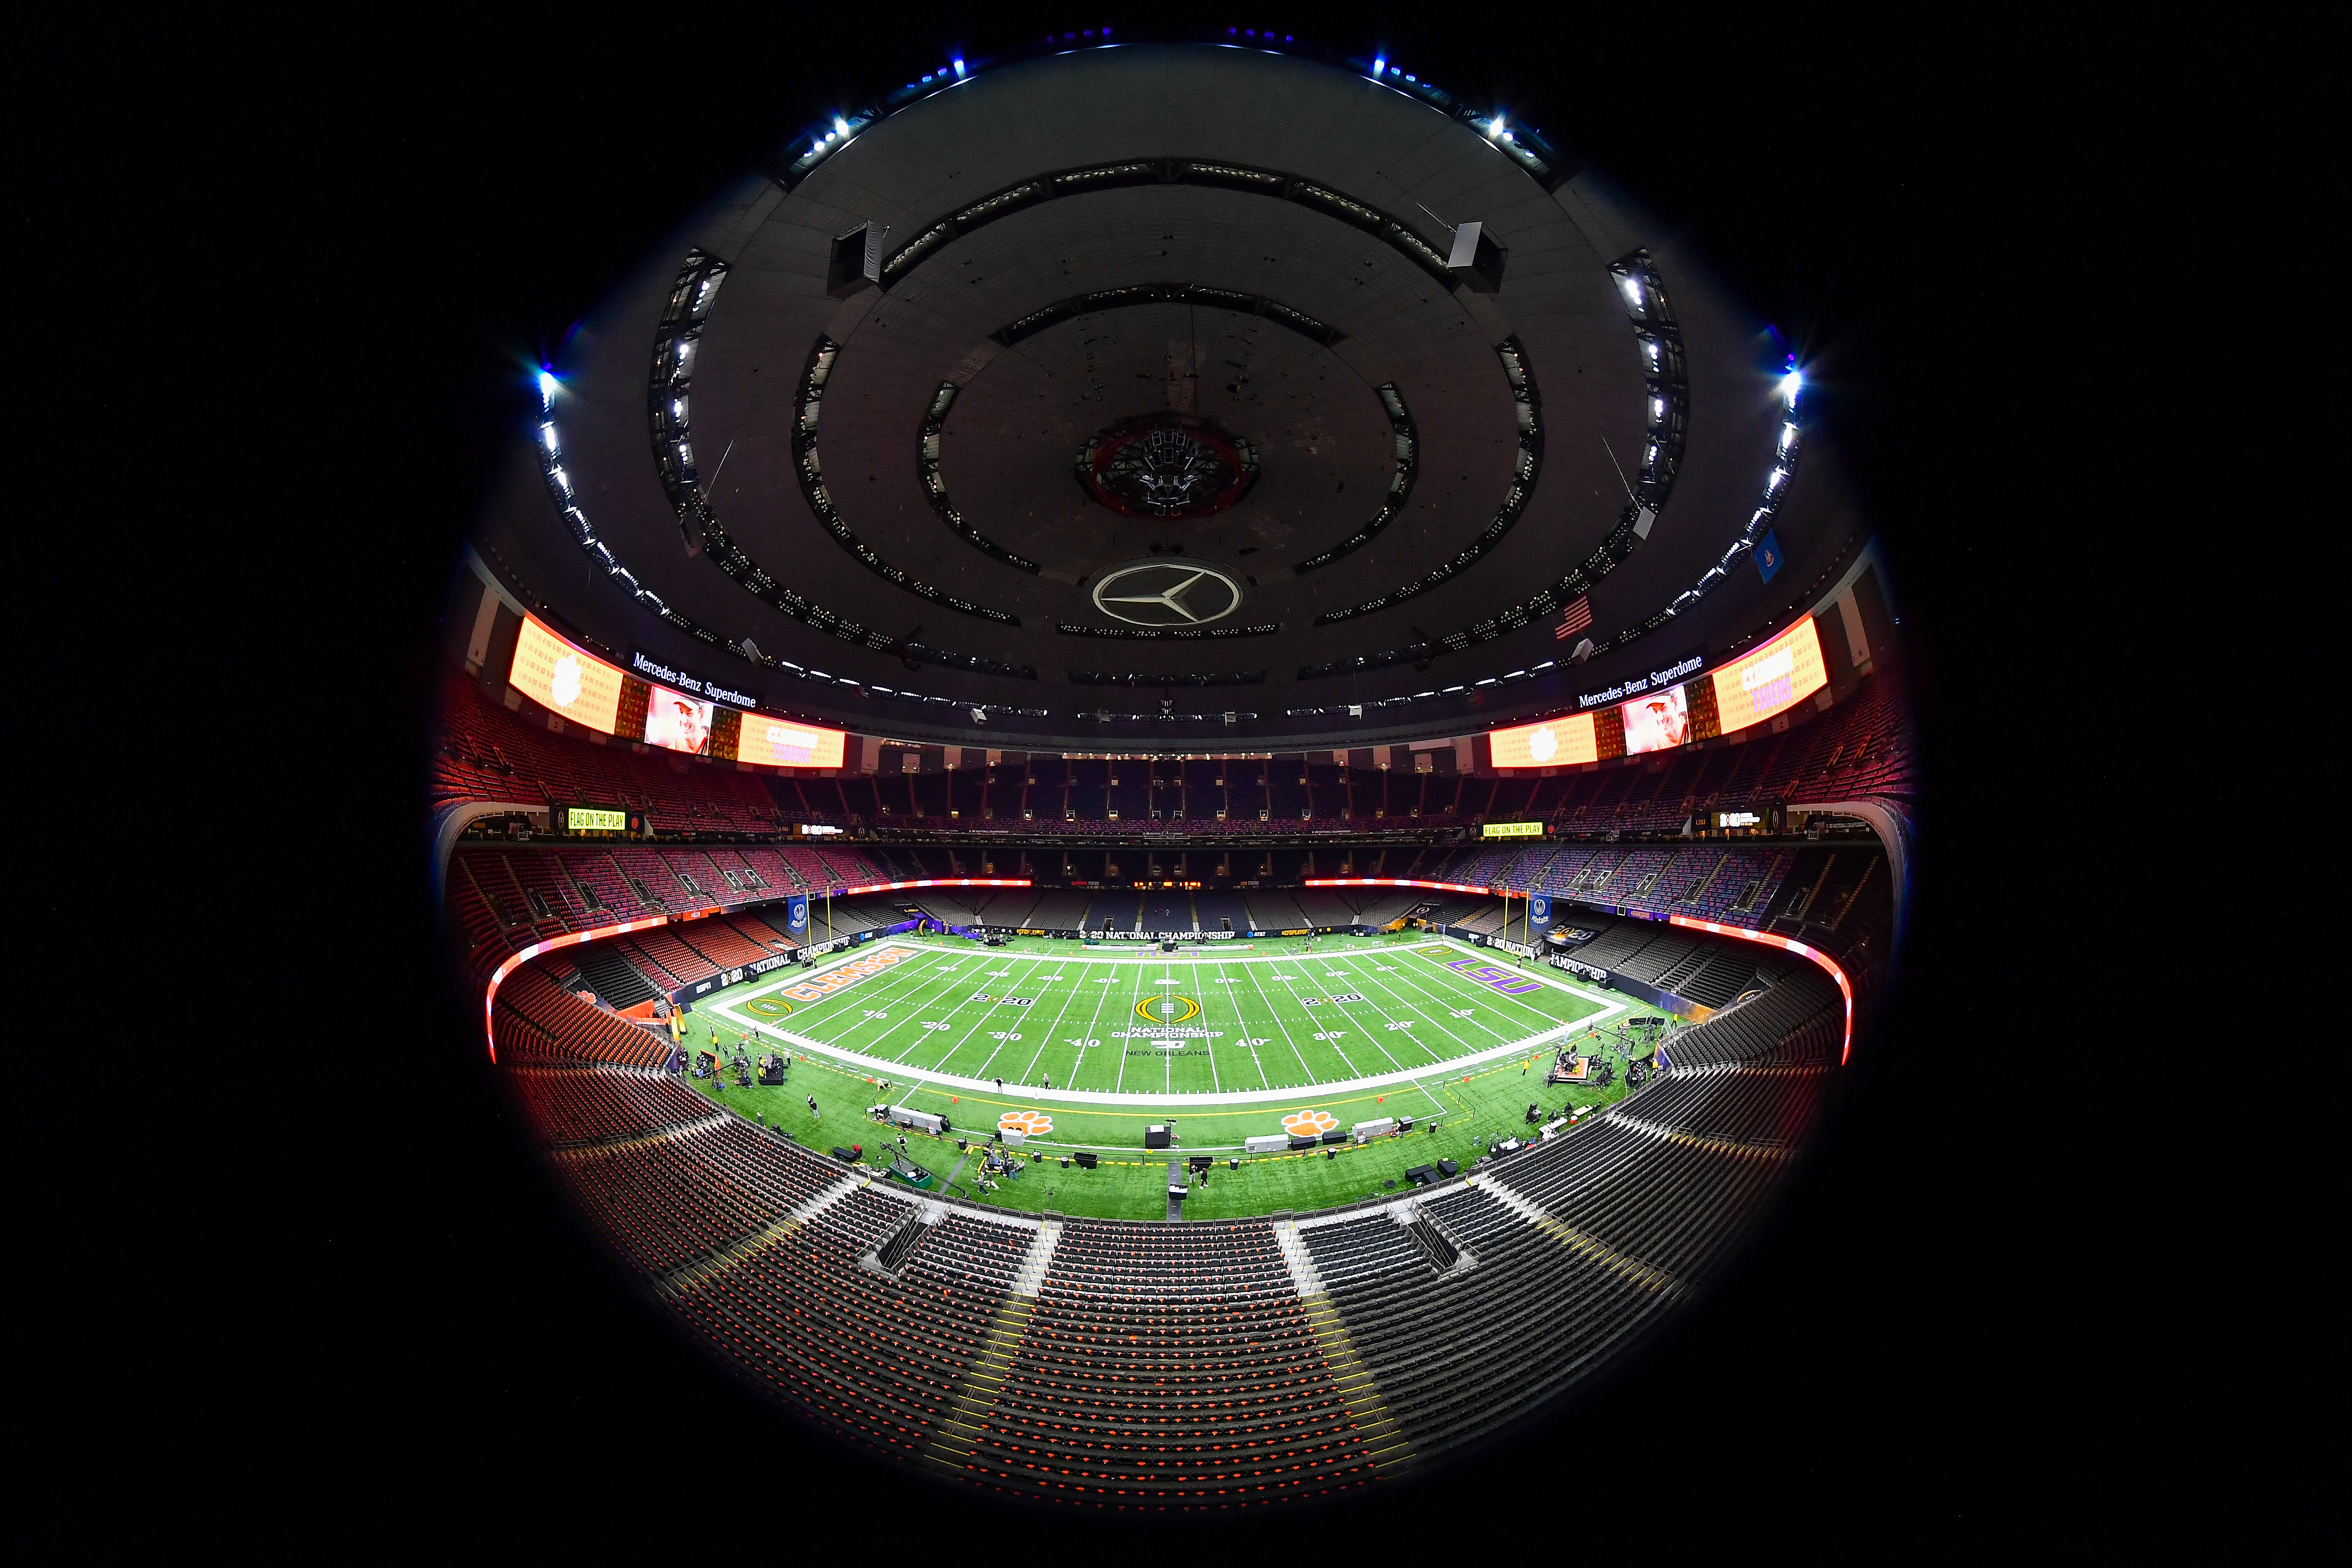 This is a general view of the Superdome where the college football national title game was played after all of our bedtimes.